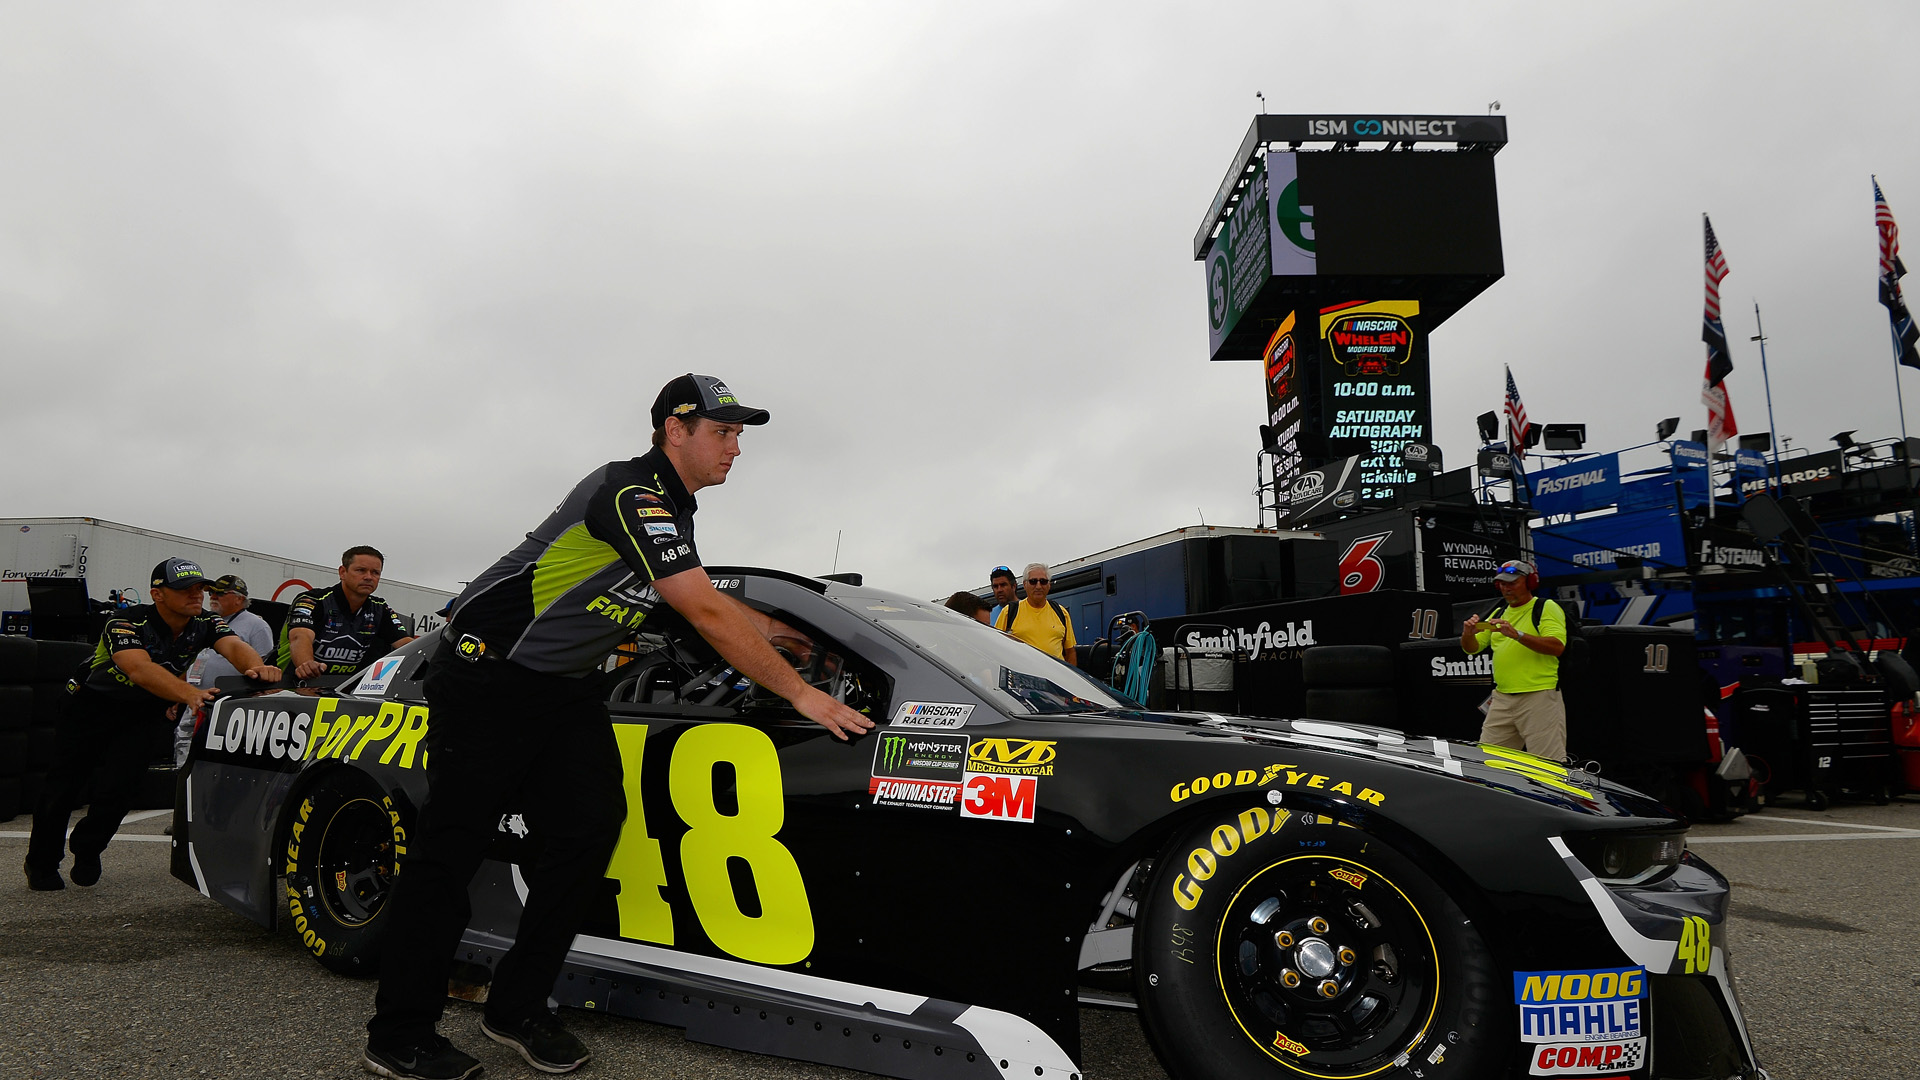 NASCAR at NHMS: Sunday's race moved up to 1 p.m